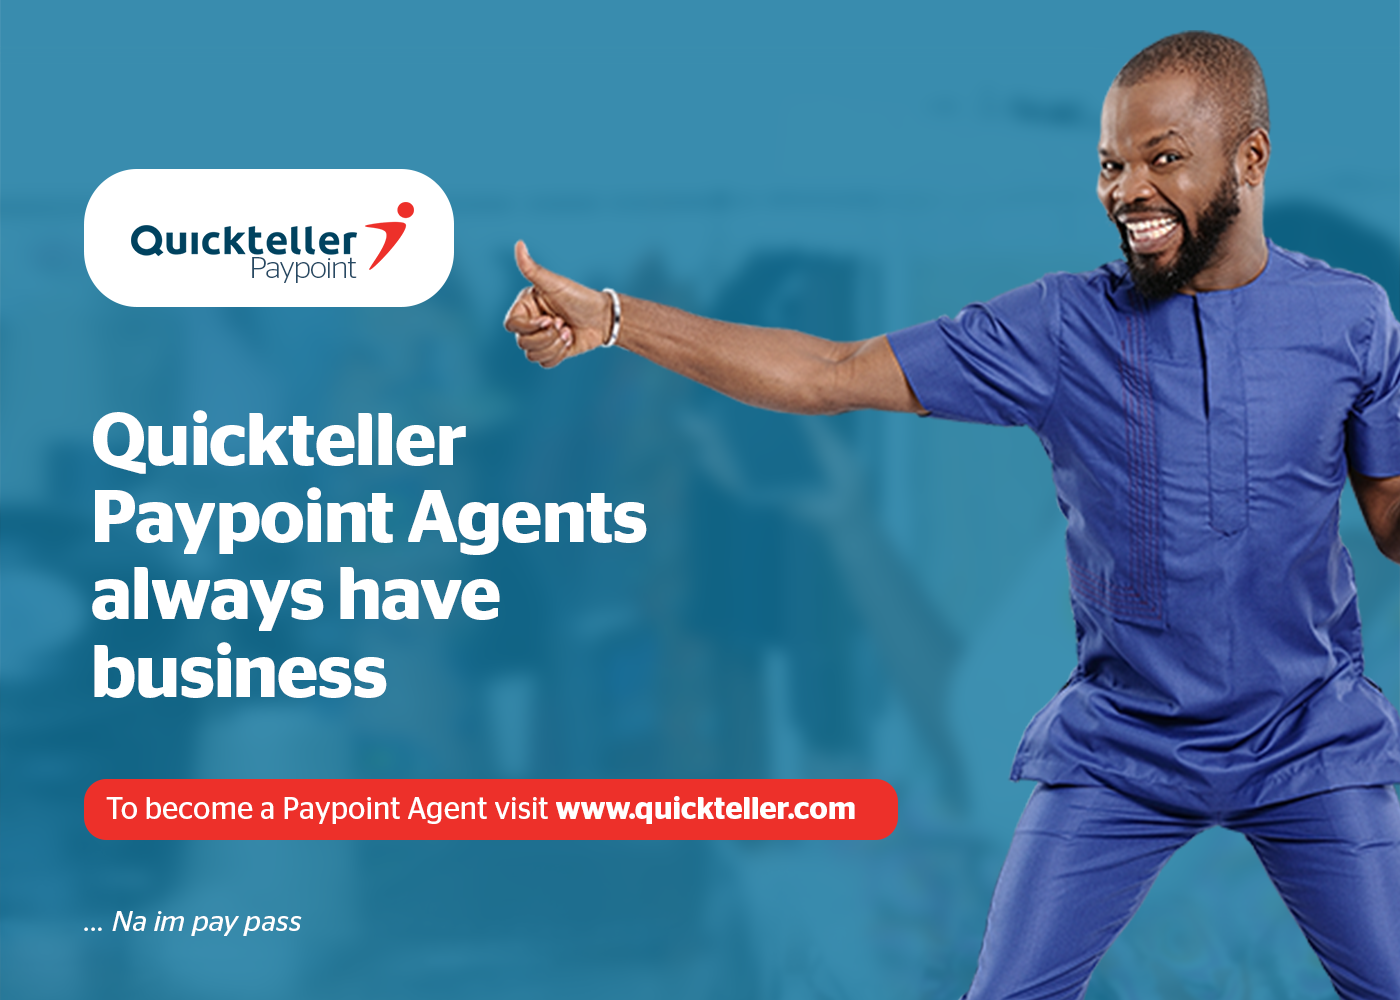 How To Become Quickteller Paypoint Agent In Nigeria and Make